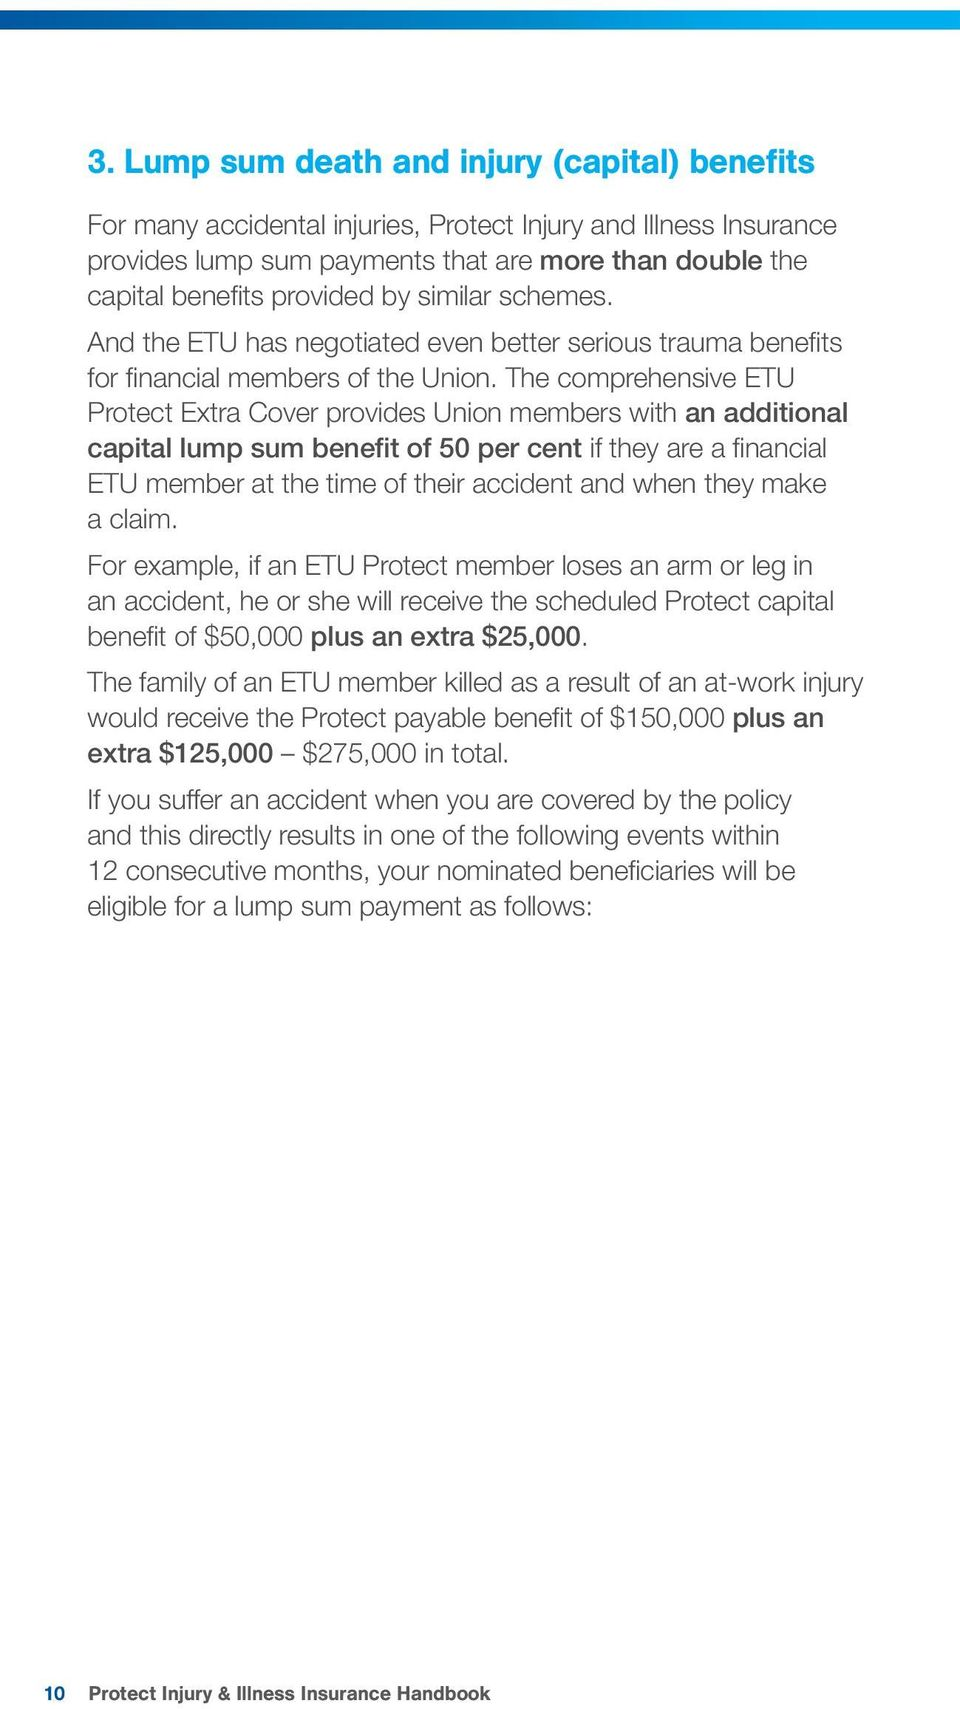 The comprehensive ETU Protect Extra Cover provides Union members with an additional capital lump sum benefit of 50 per cent if they are a fi nancial ETU member at the time of their accident and when